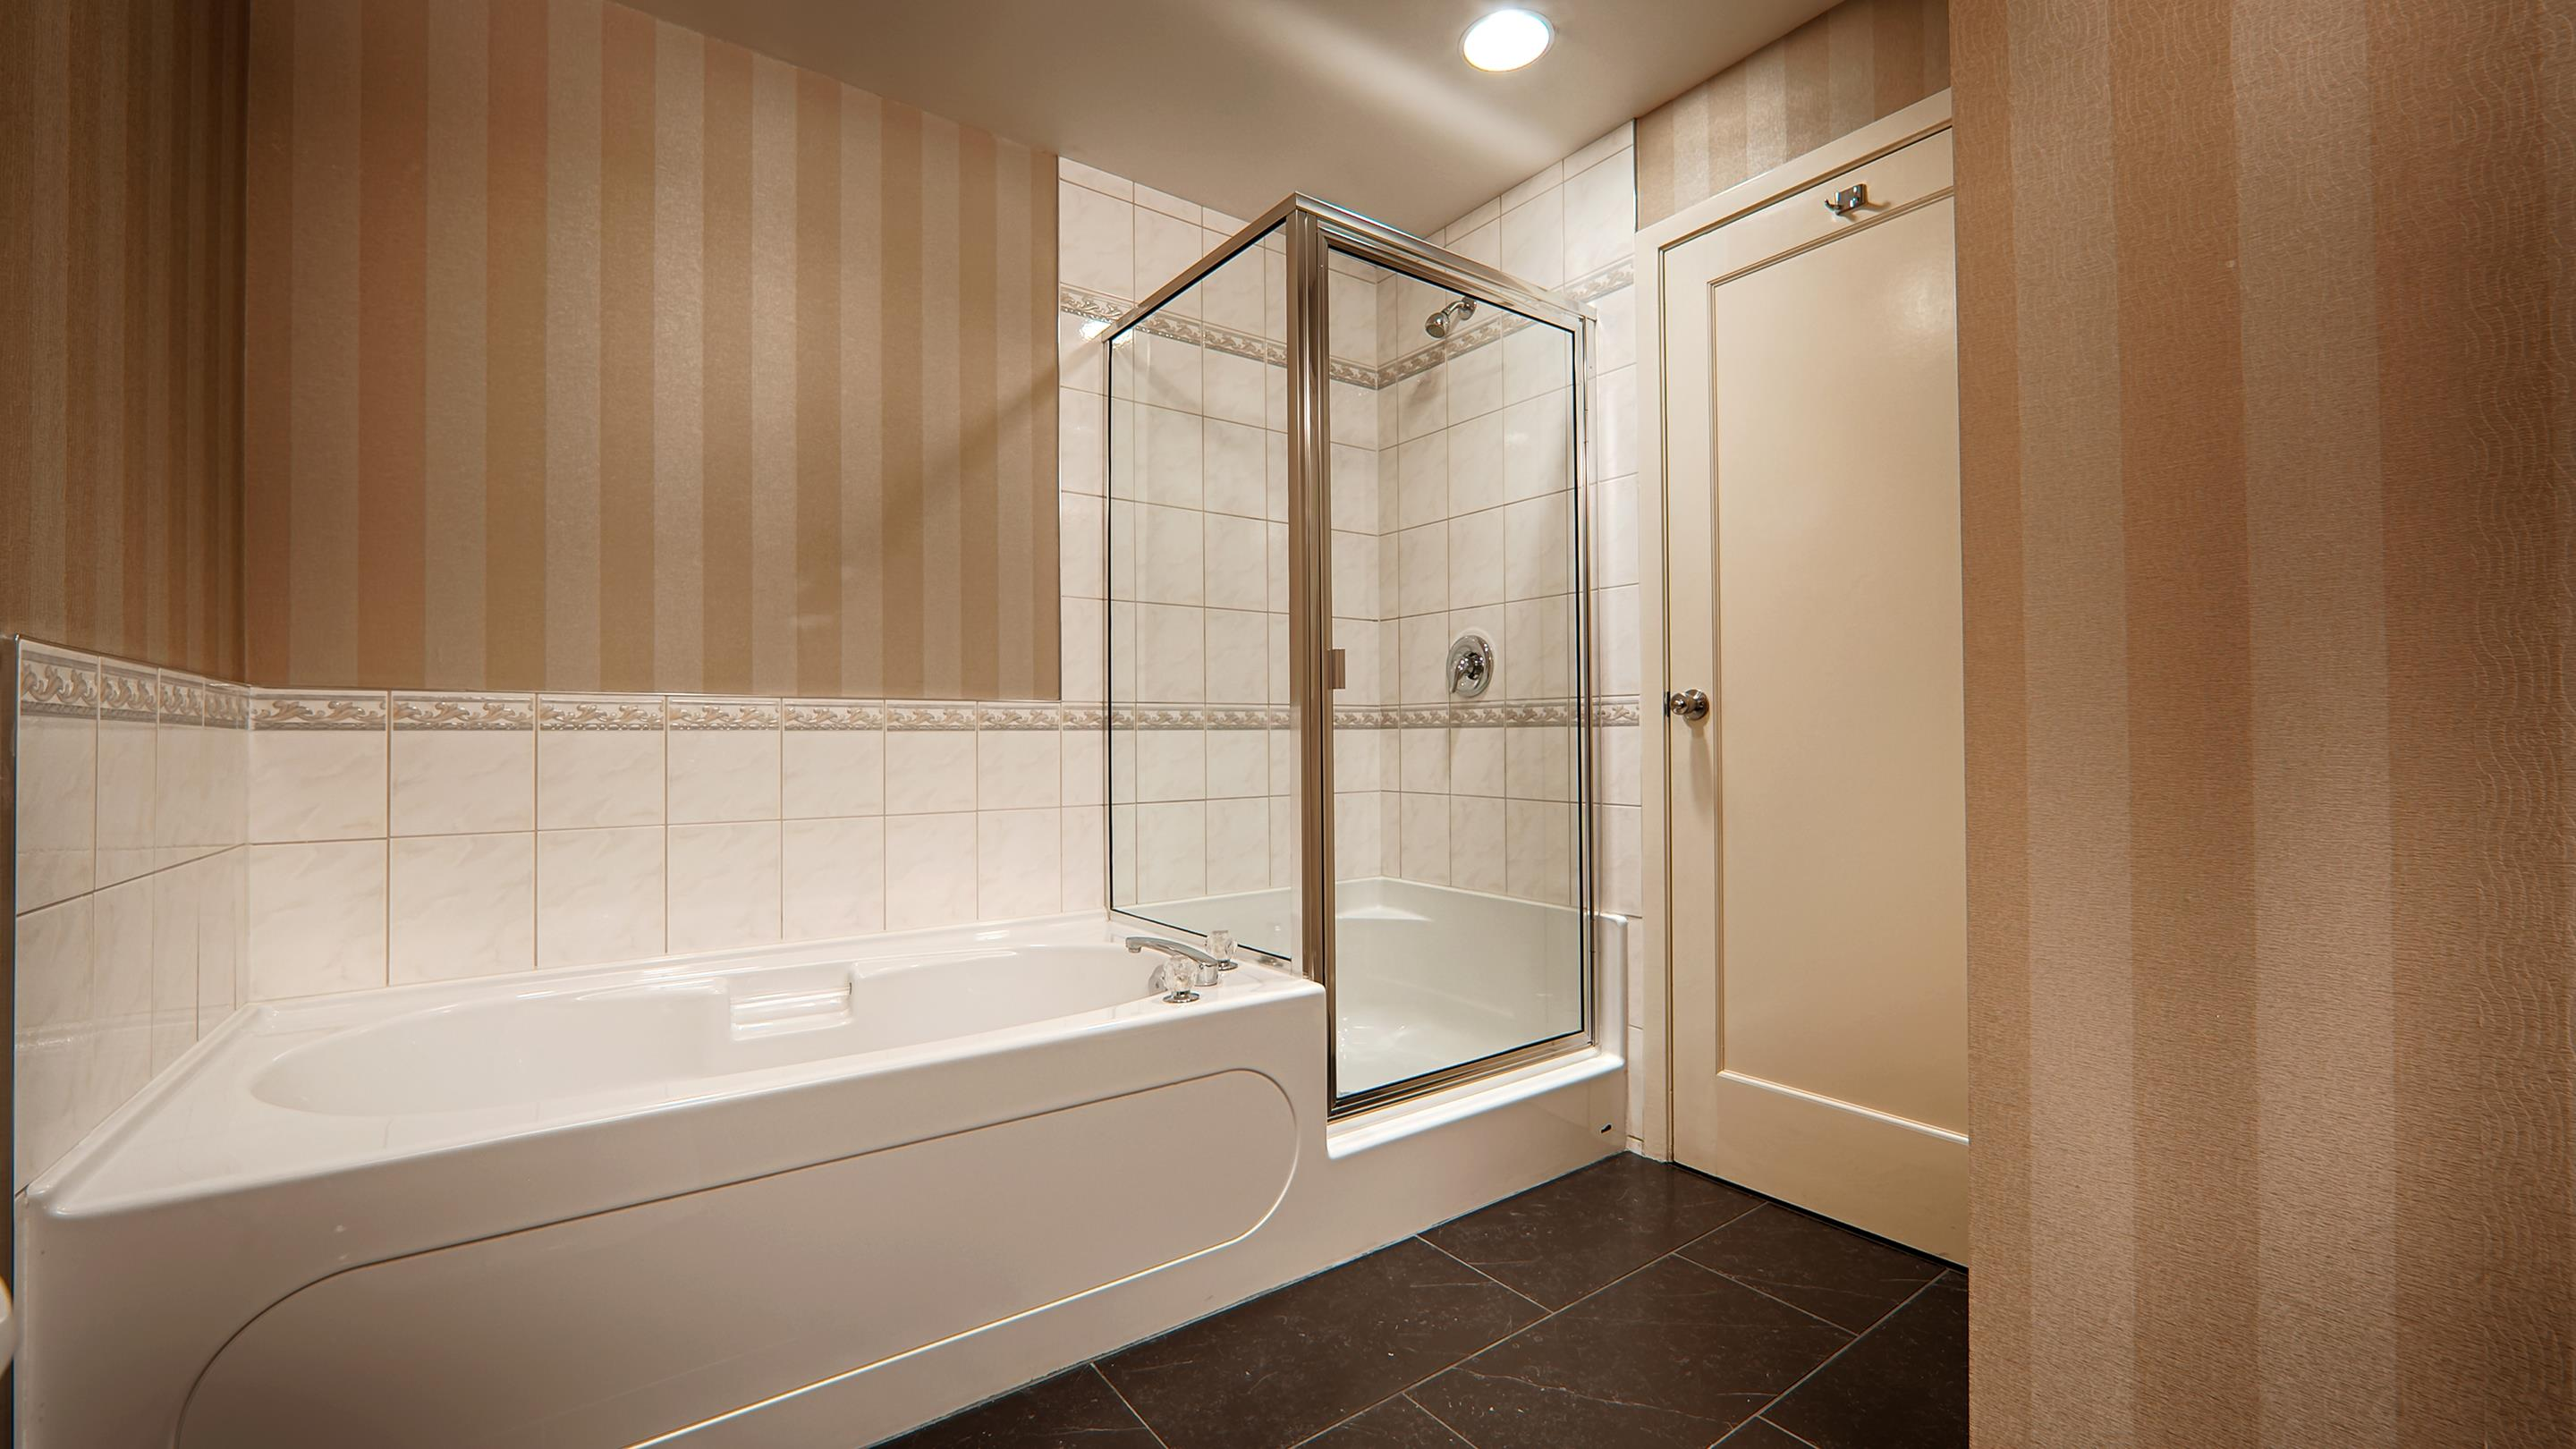 Best Western Plus Kelowna Hotel & Suites in Kelowna: Executive Room bathroom